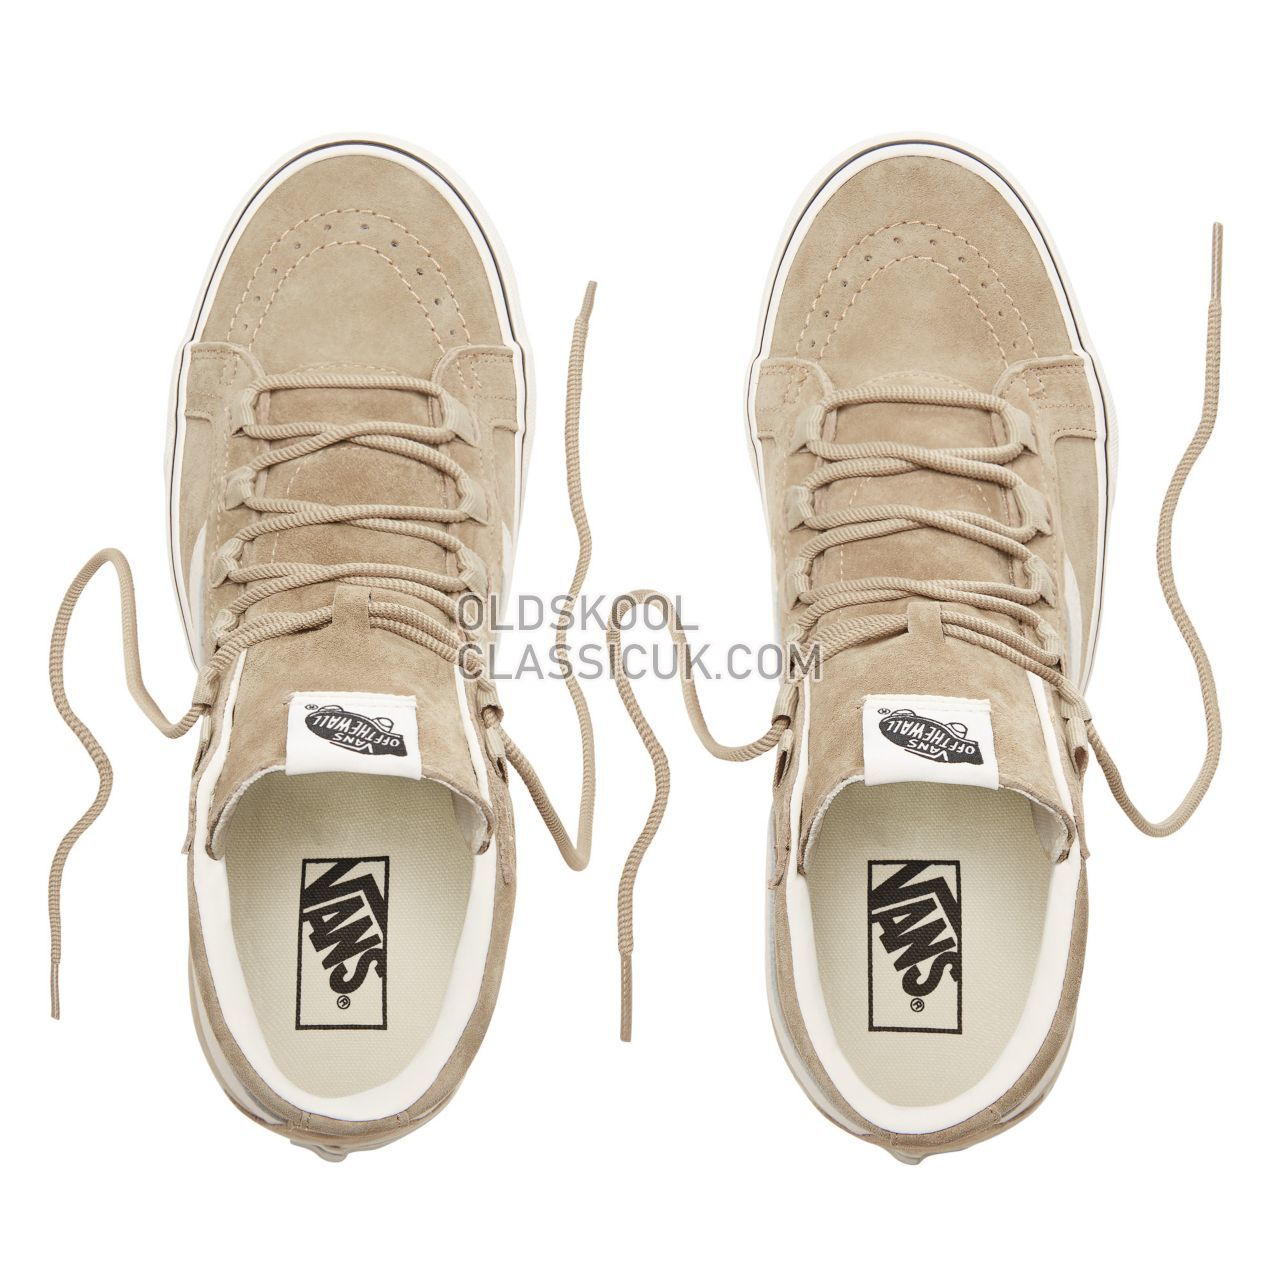 Vans Suede Sk8-Hi Reissue Ghillie Sneakers Mens (Pig Suede) Slate Green/Marshmallow VN0A3ZCHUQS Shoes